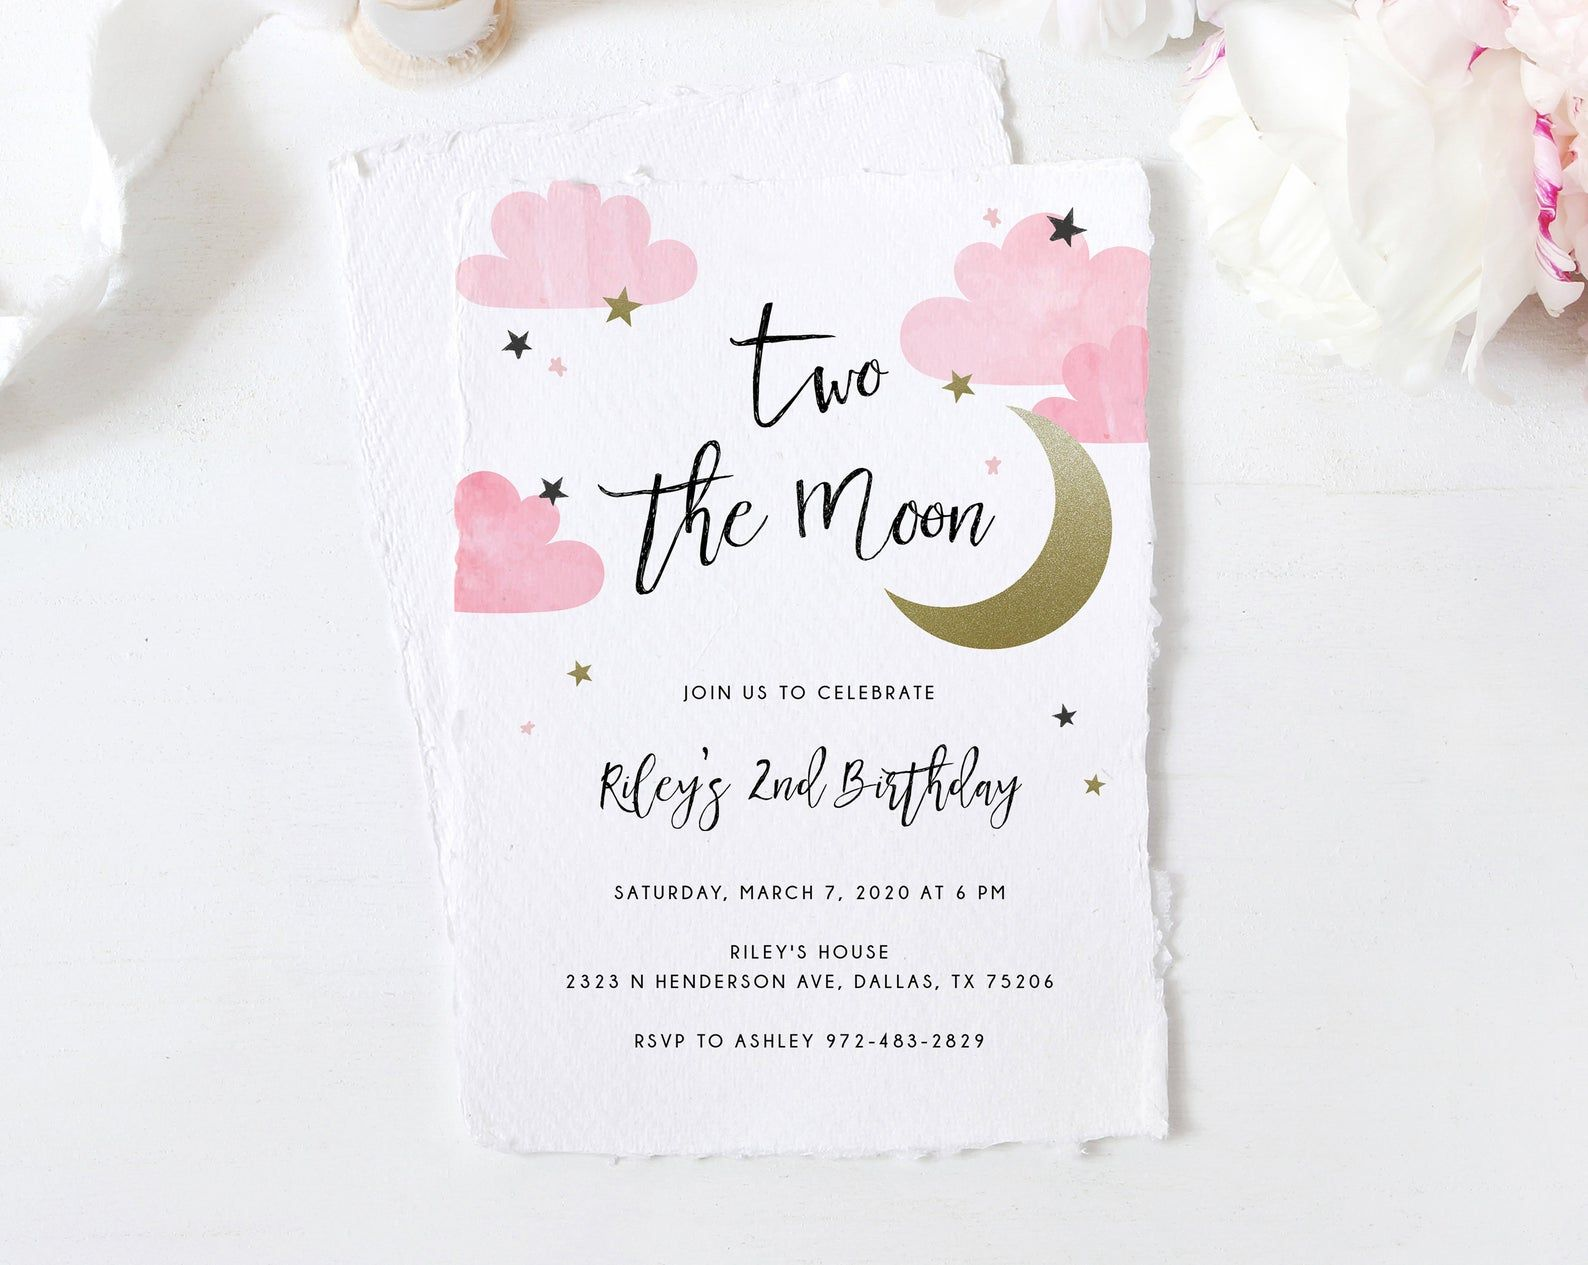 Two The Moon Invitation Template Printable 2nd Birthday Etsy In 2021 Printable Birthday Invitations Birthday Invitations 2nd Birthday Invitations